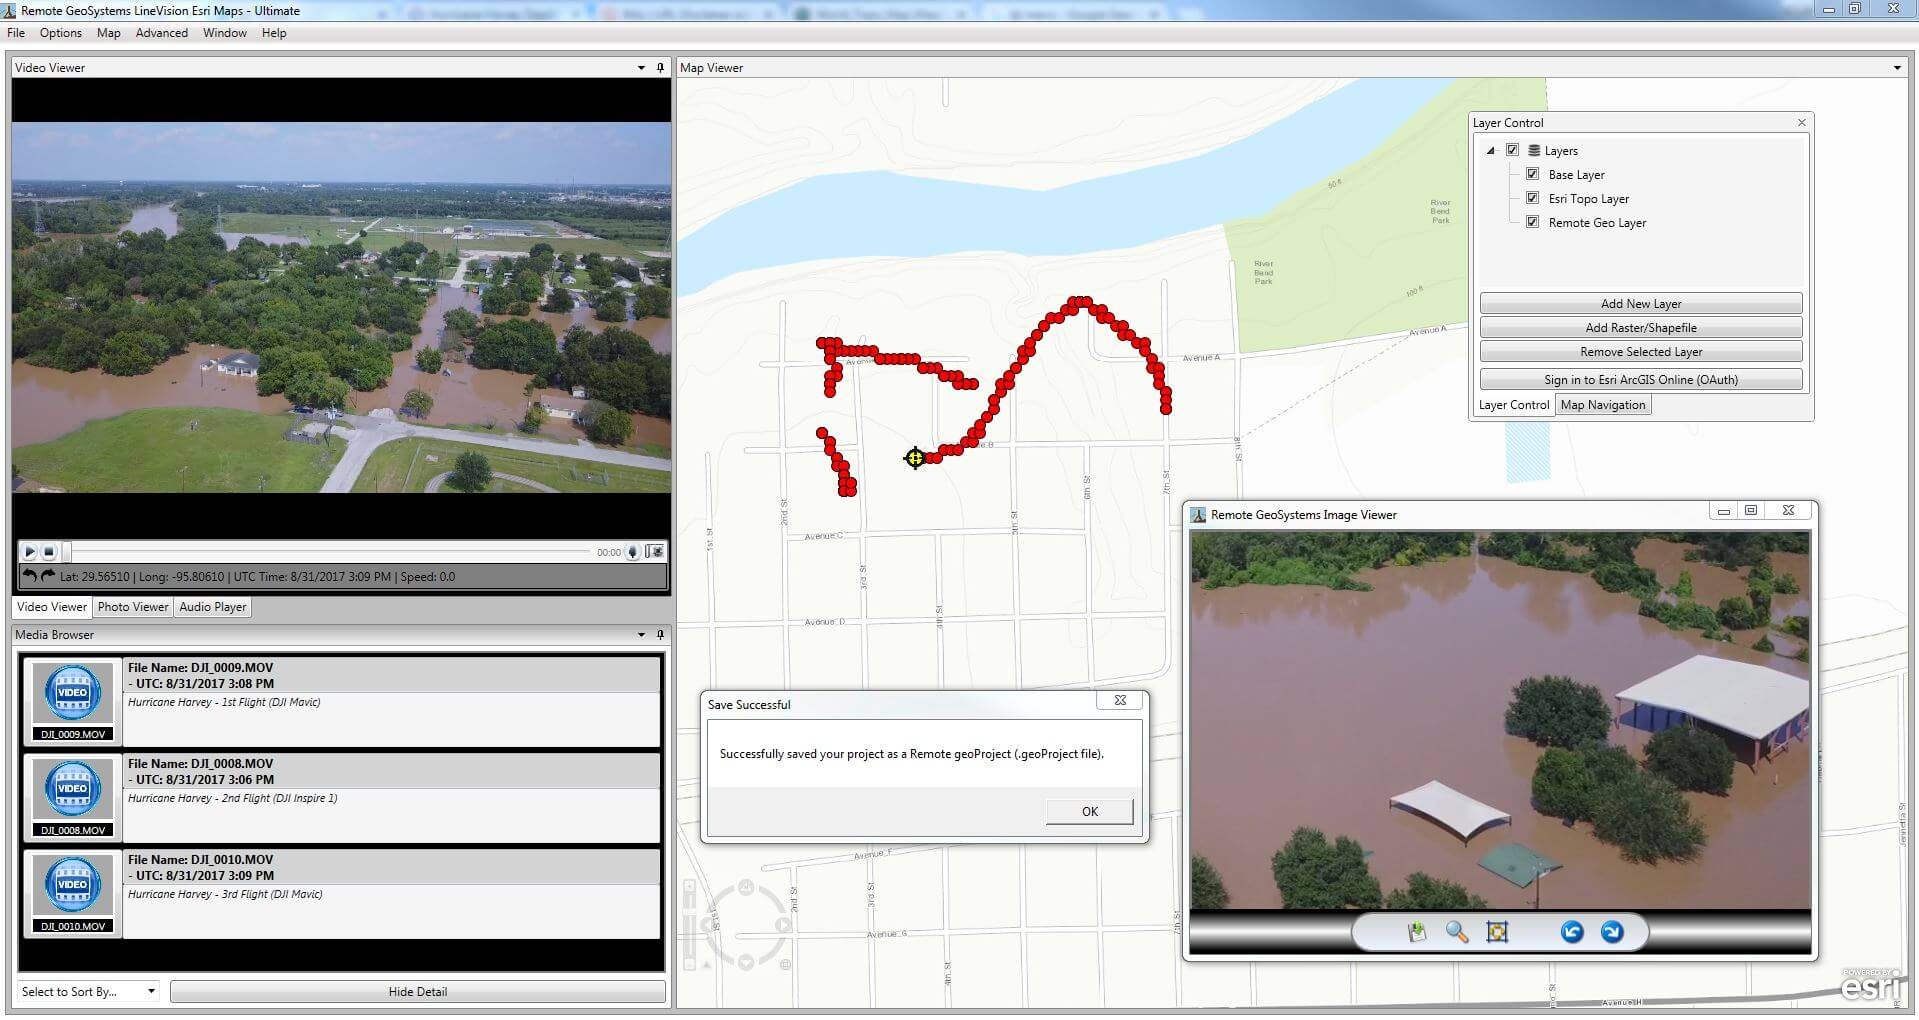 Drone Software Donation for Hurricane Recovery - sUAS News